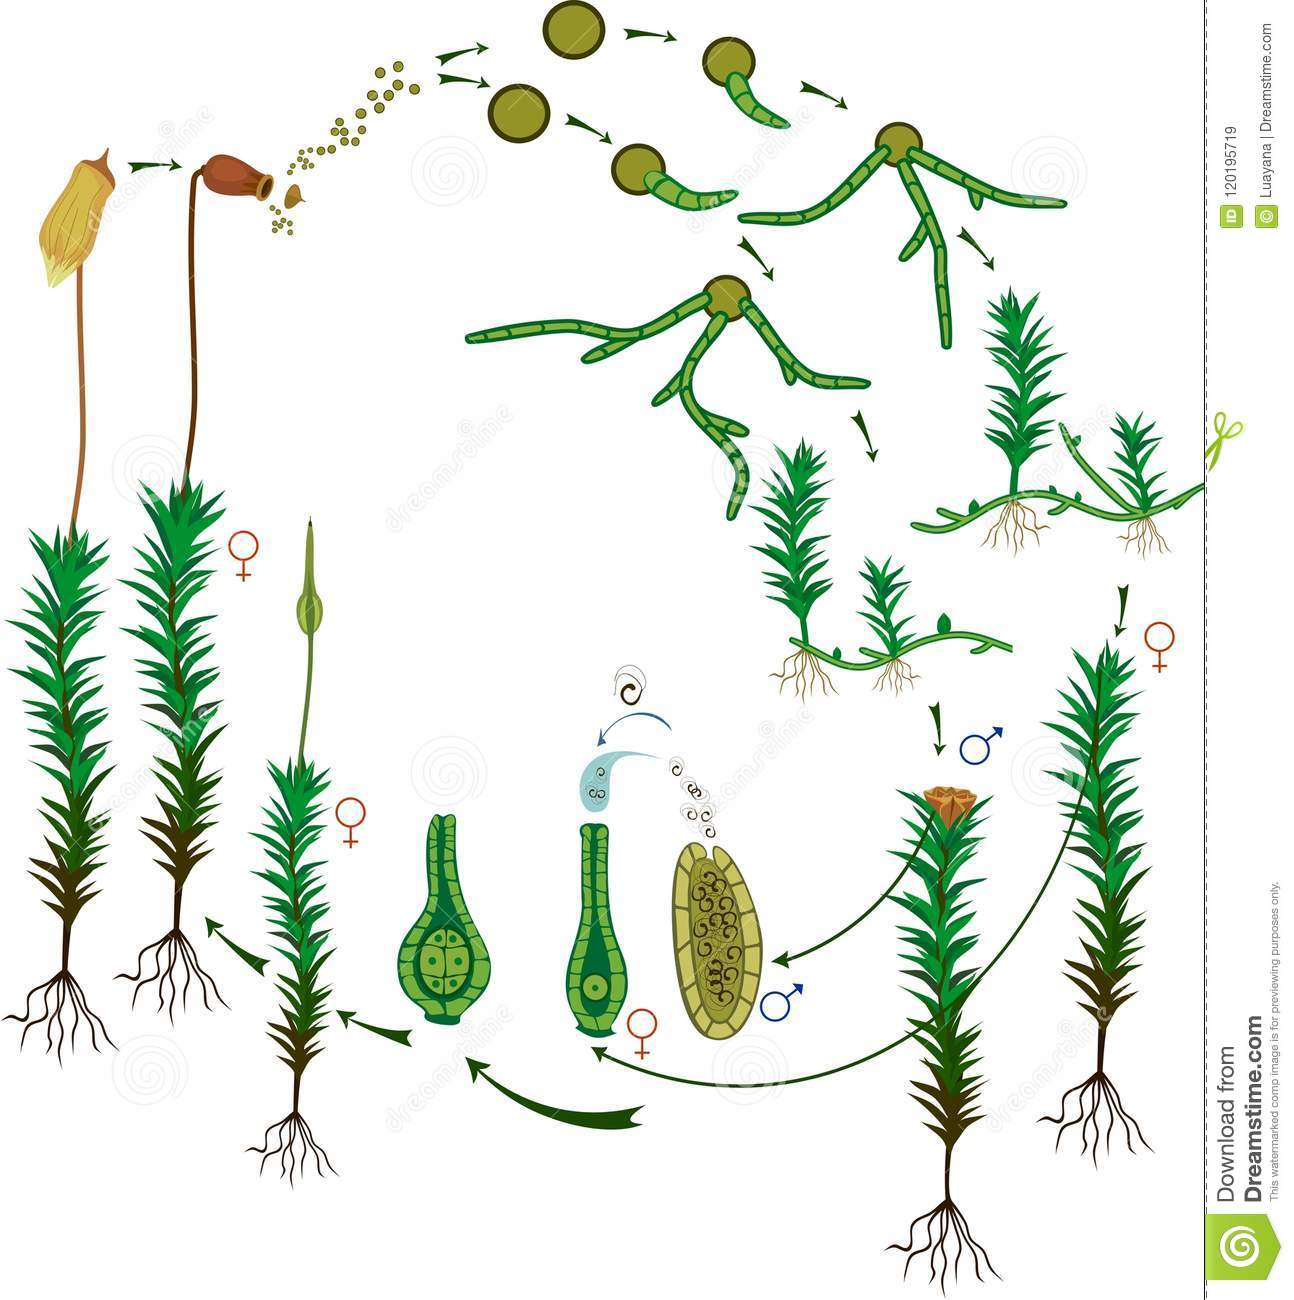 Moss Life Cycle Diagram Of Life Cycle Of Common Haircap